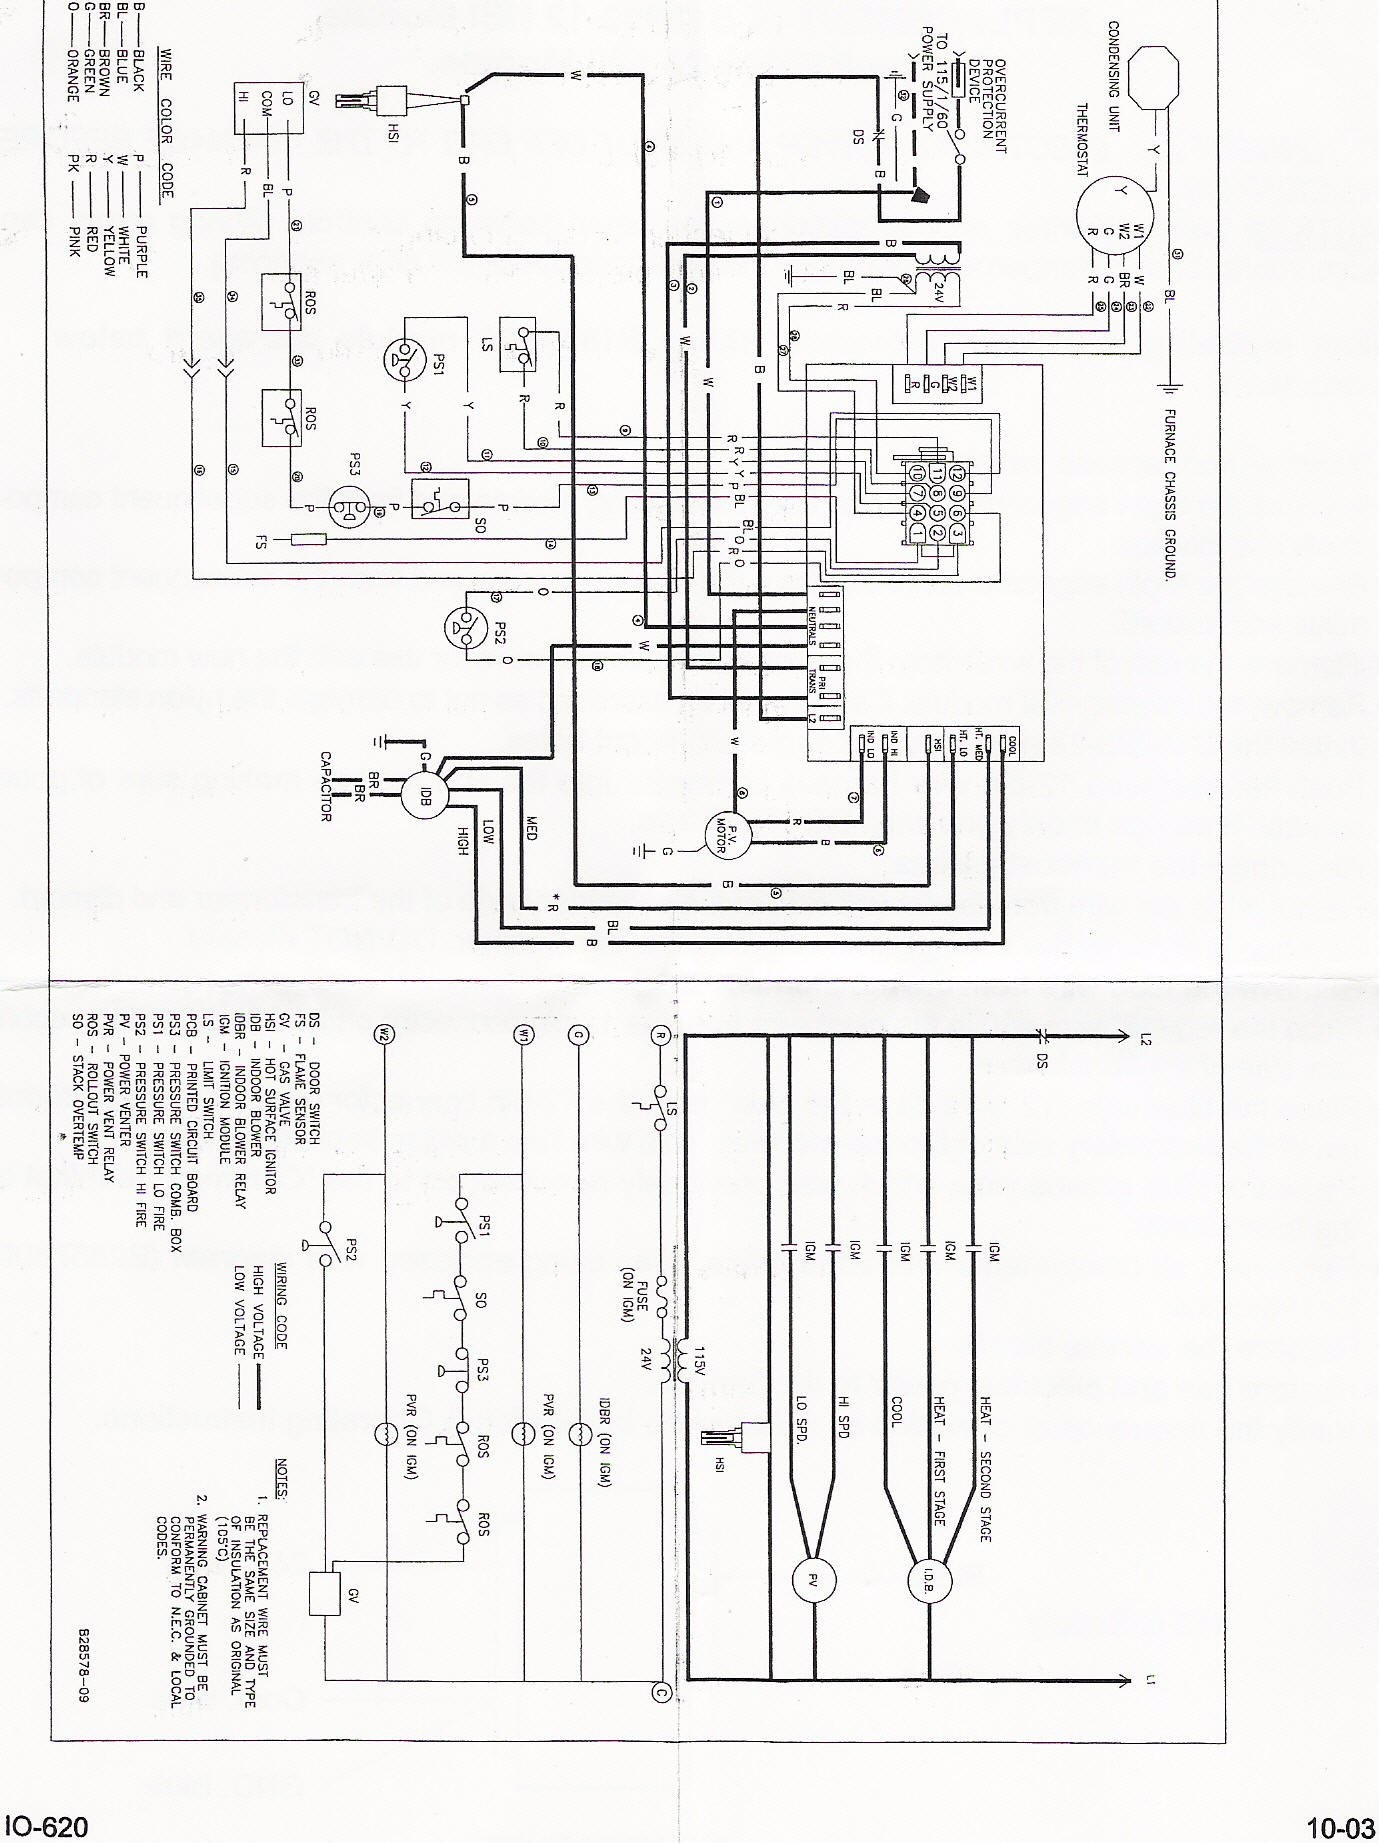 heat pump thermostat wiring ac and heater goodman defrost board wiring diagram | free wiring diagram heat pump control wiring